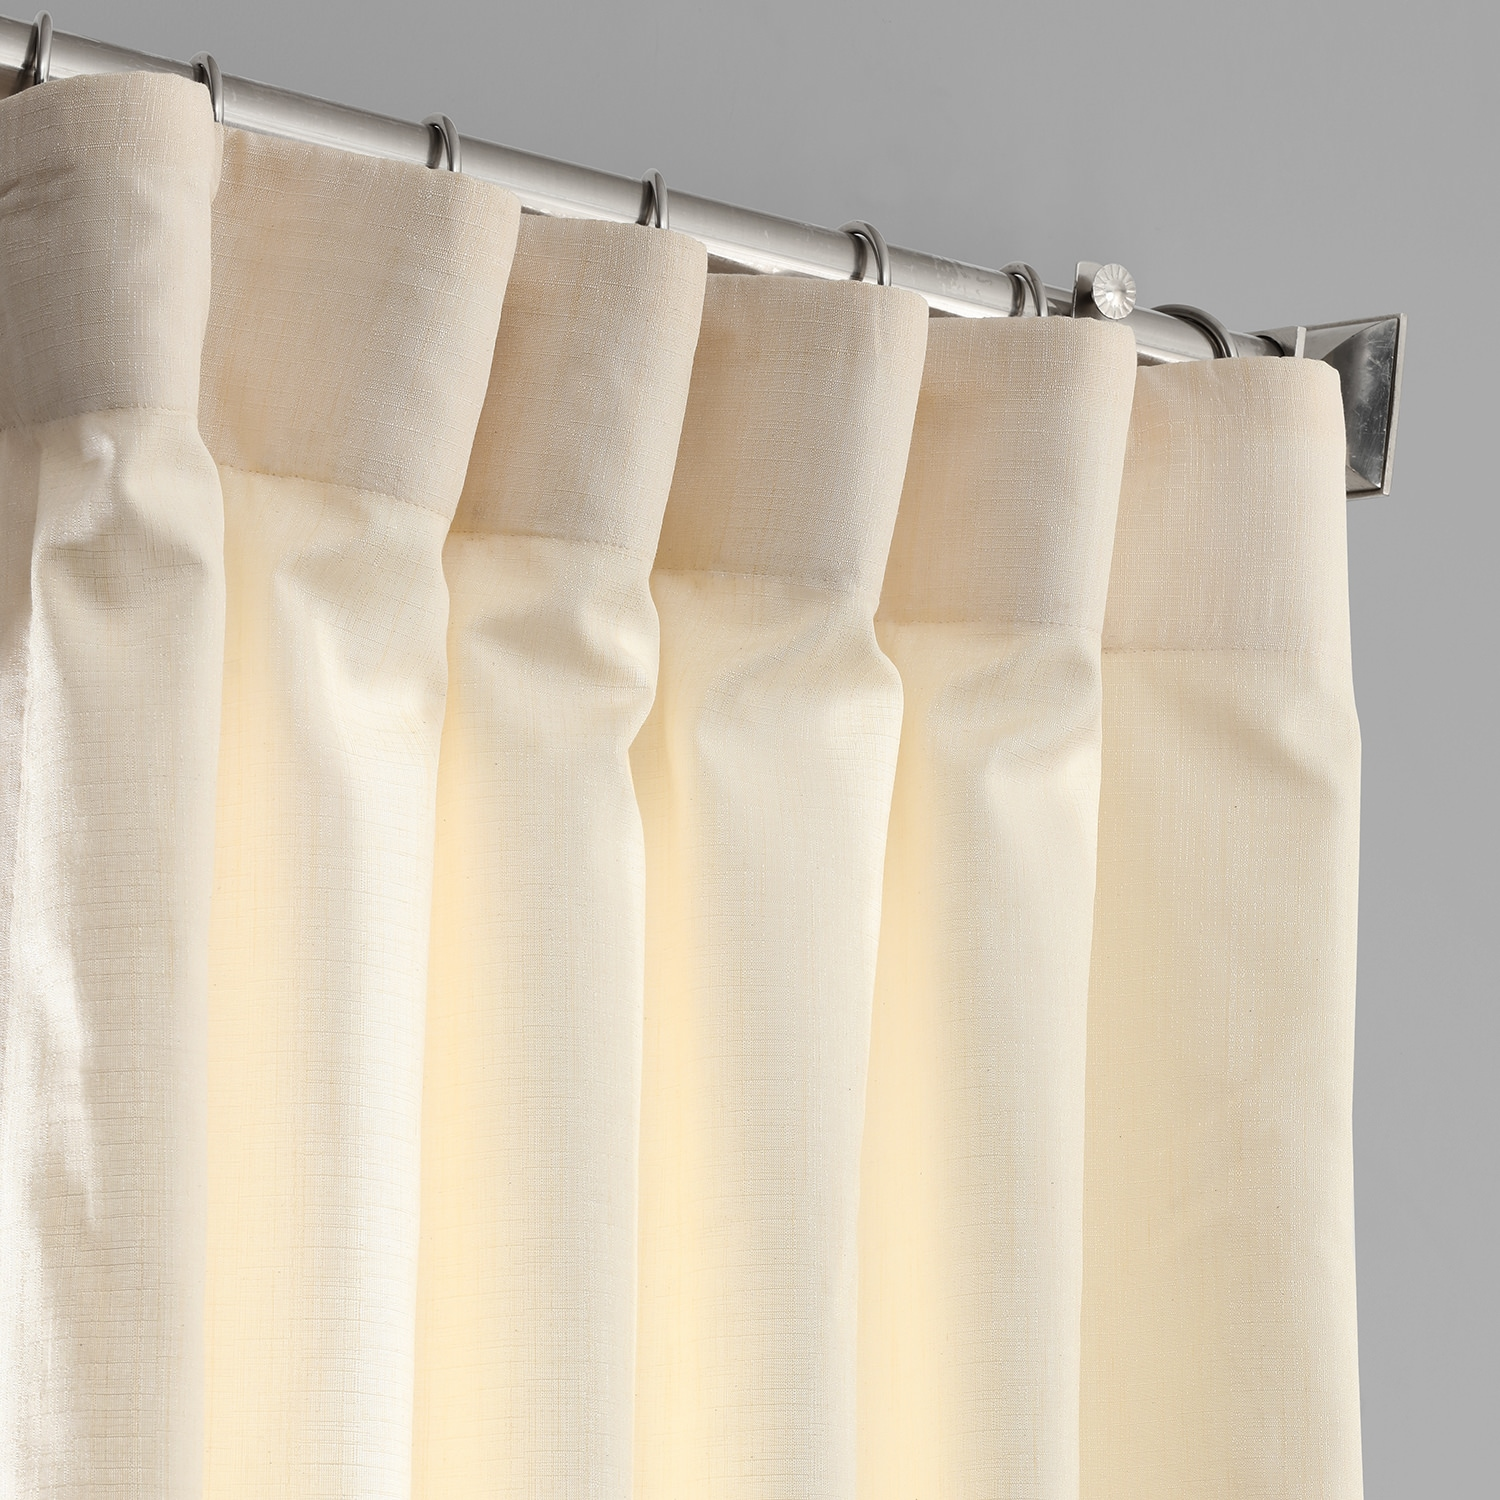 Ivory Designer Chambray Textured Curtains